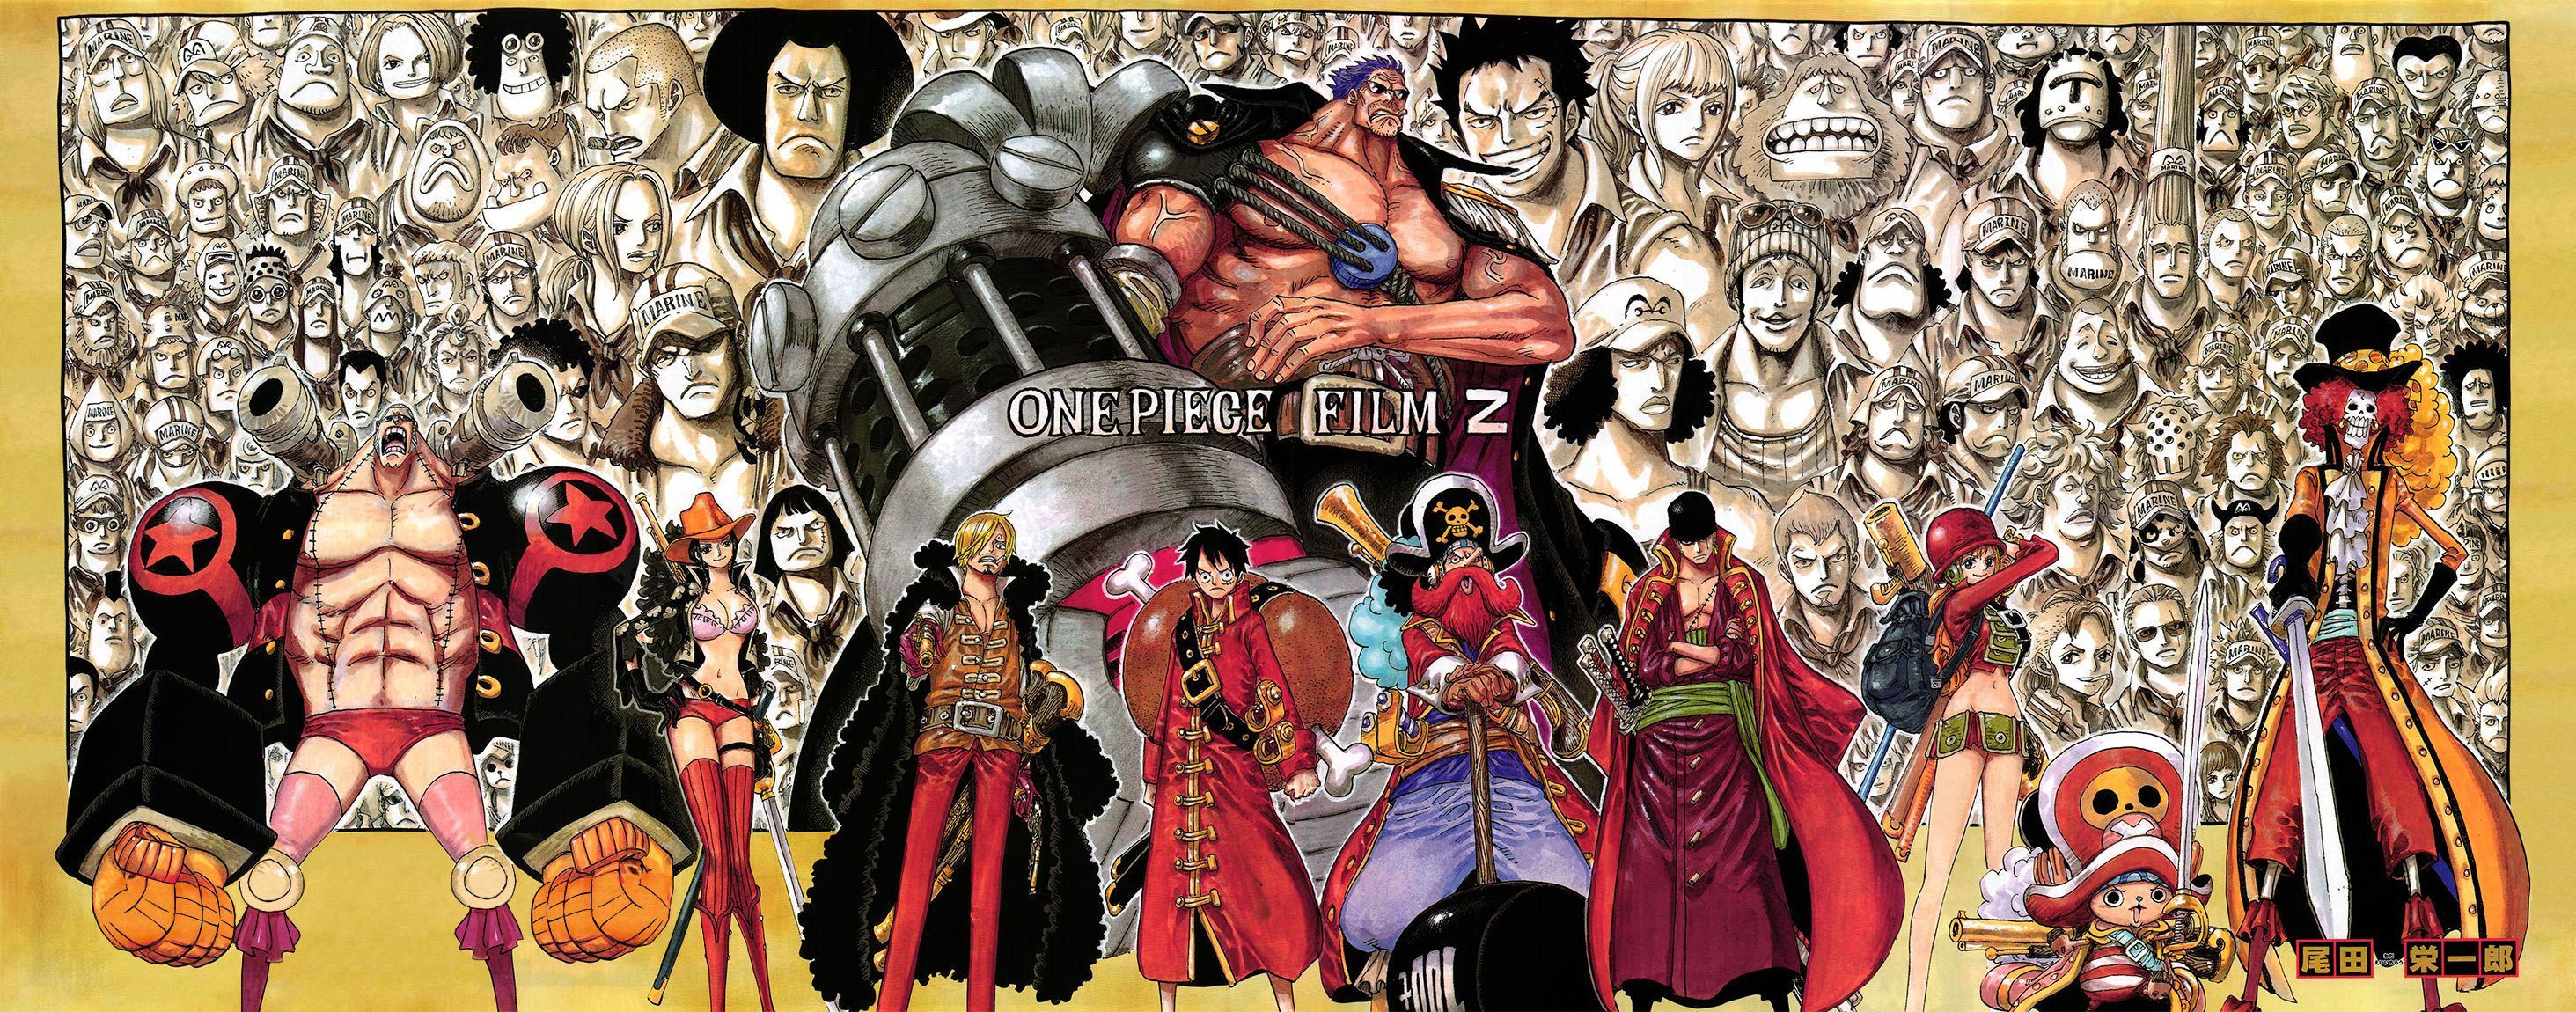 1 Piece Anime Characters : One piece google search character design pinterest